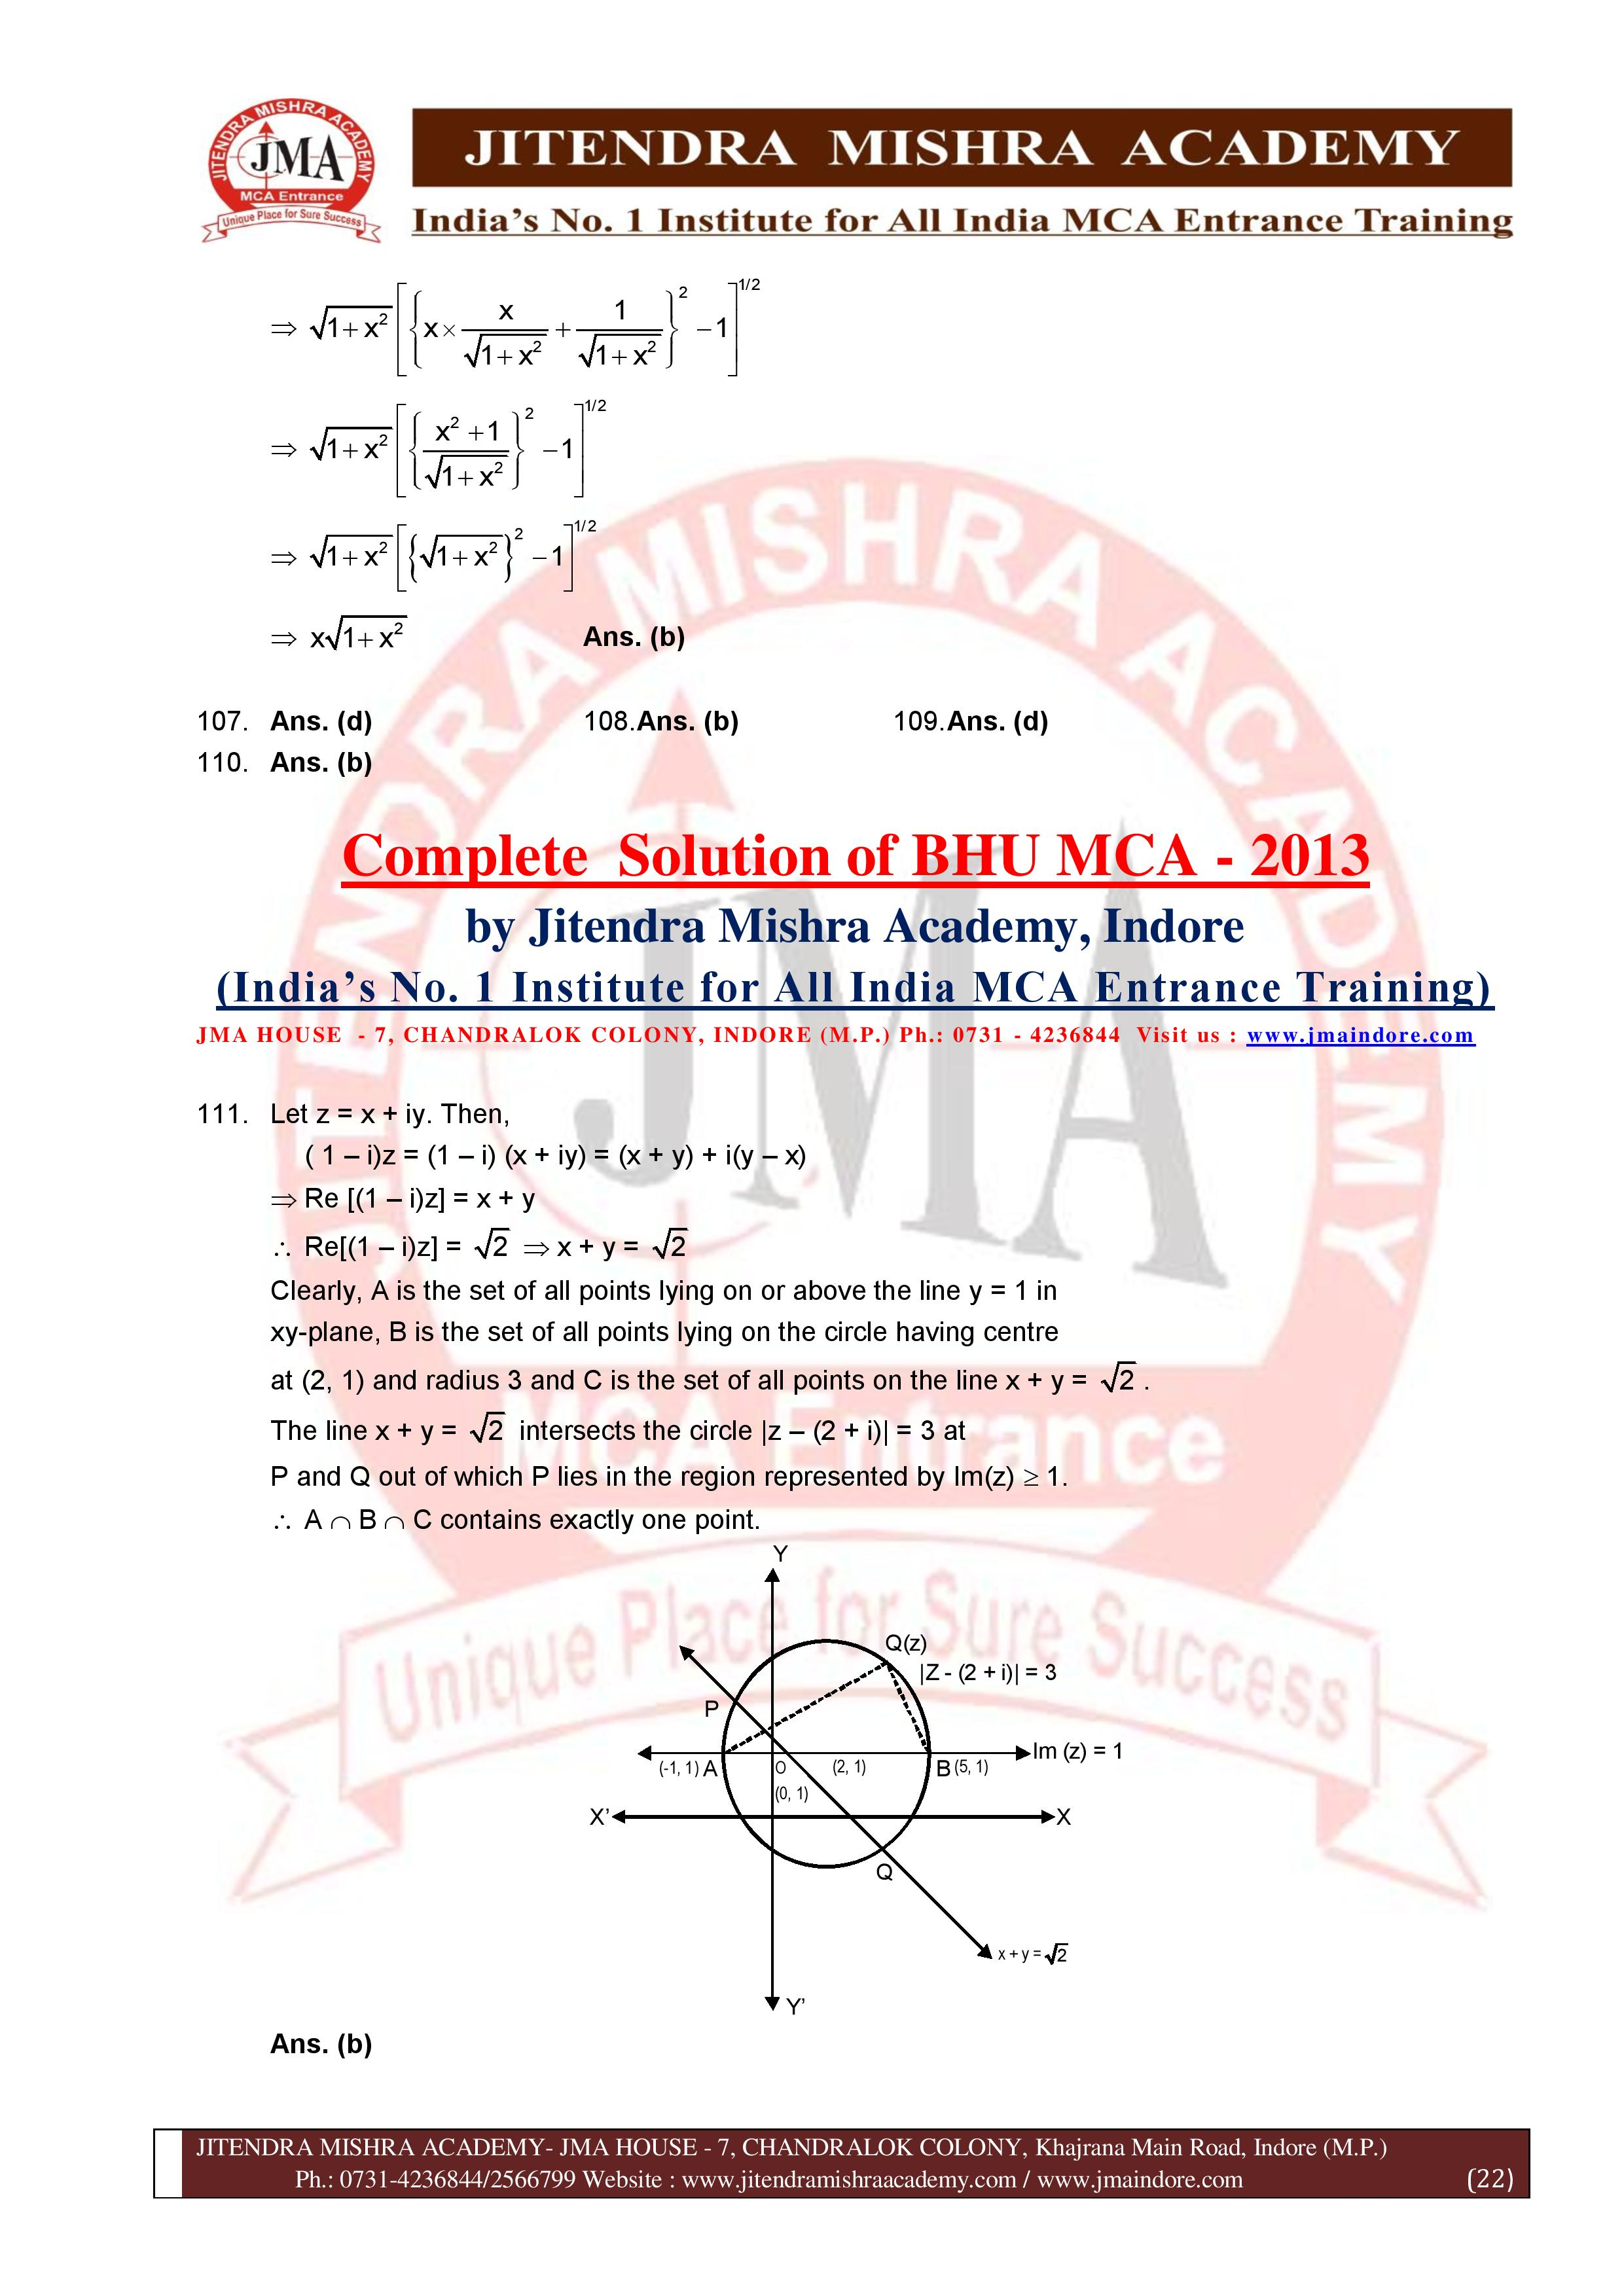 BHU 2013 SOLUTION (SET - 3) (06.07.16)-page-022